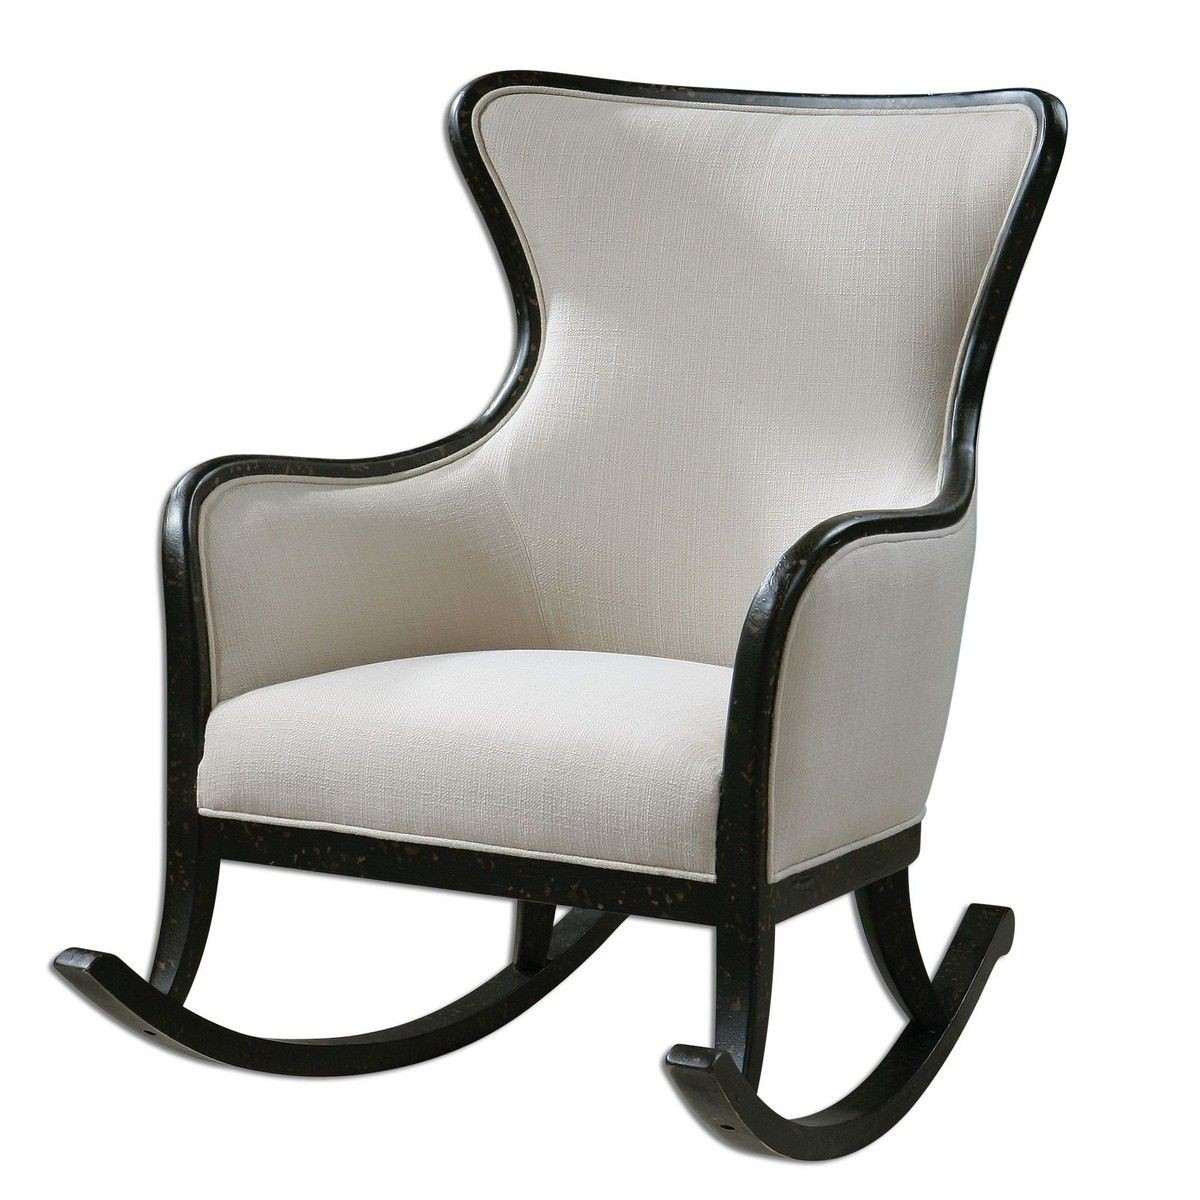 Elegant Black And White Rocking Arm Chair